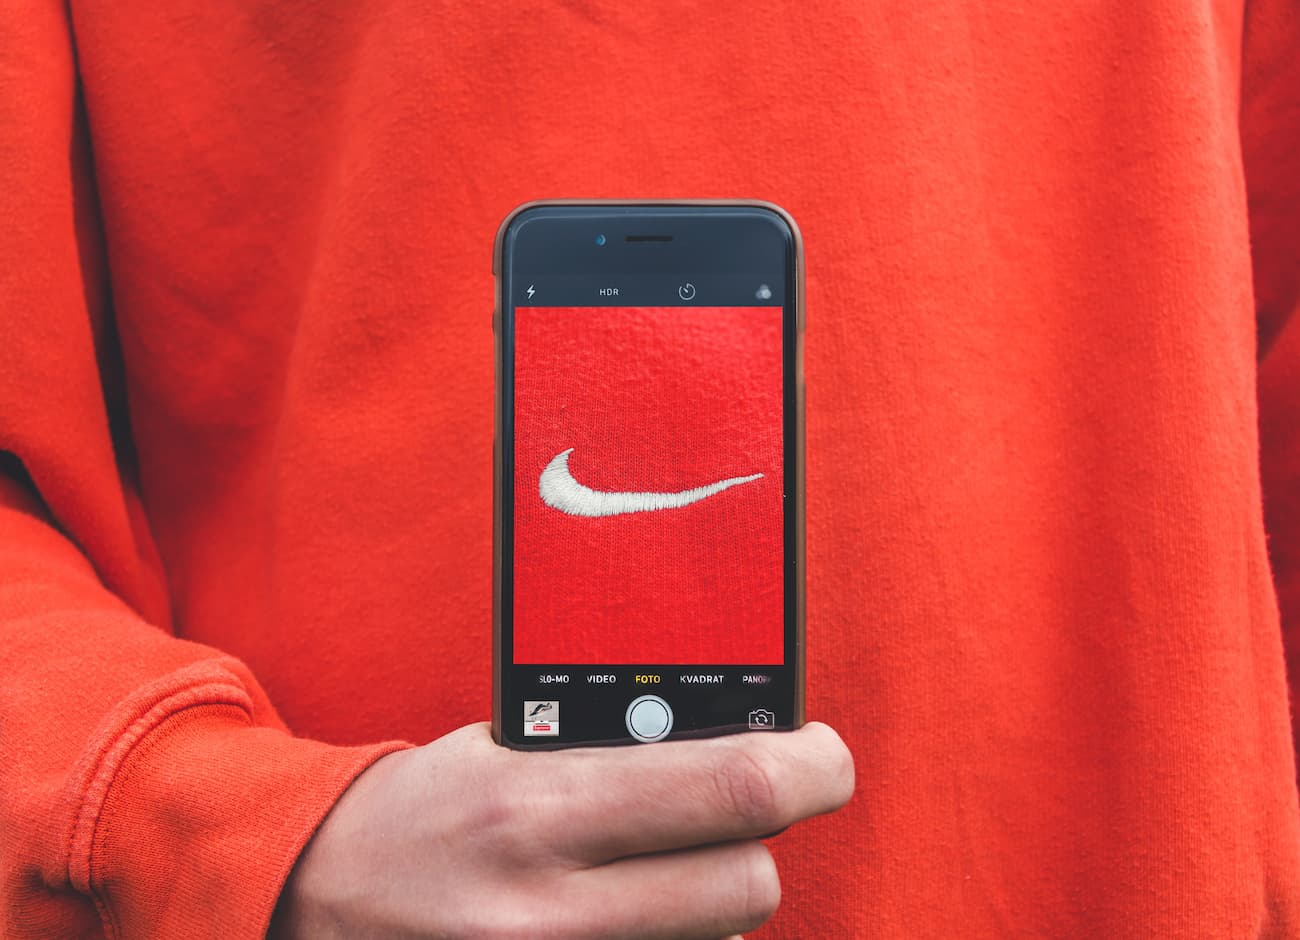 5 Post Ideas for Brands Without A Product Yet